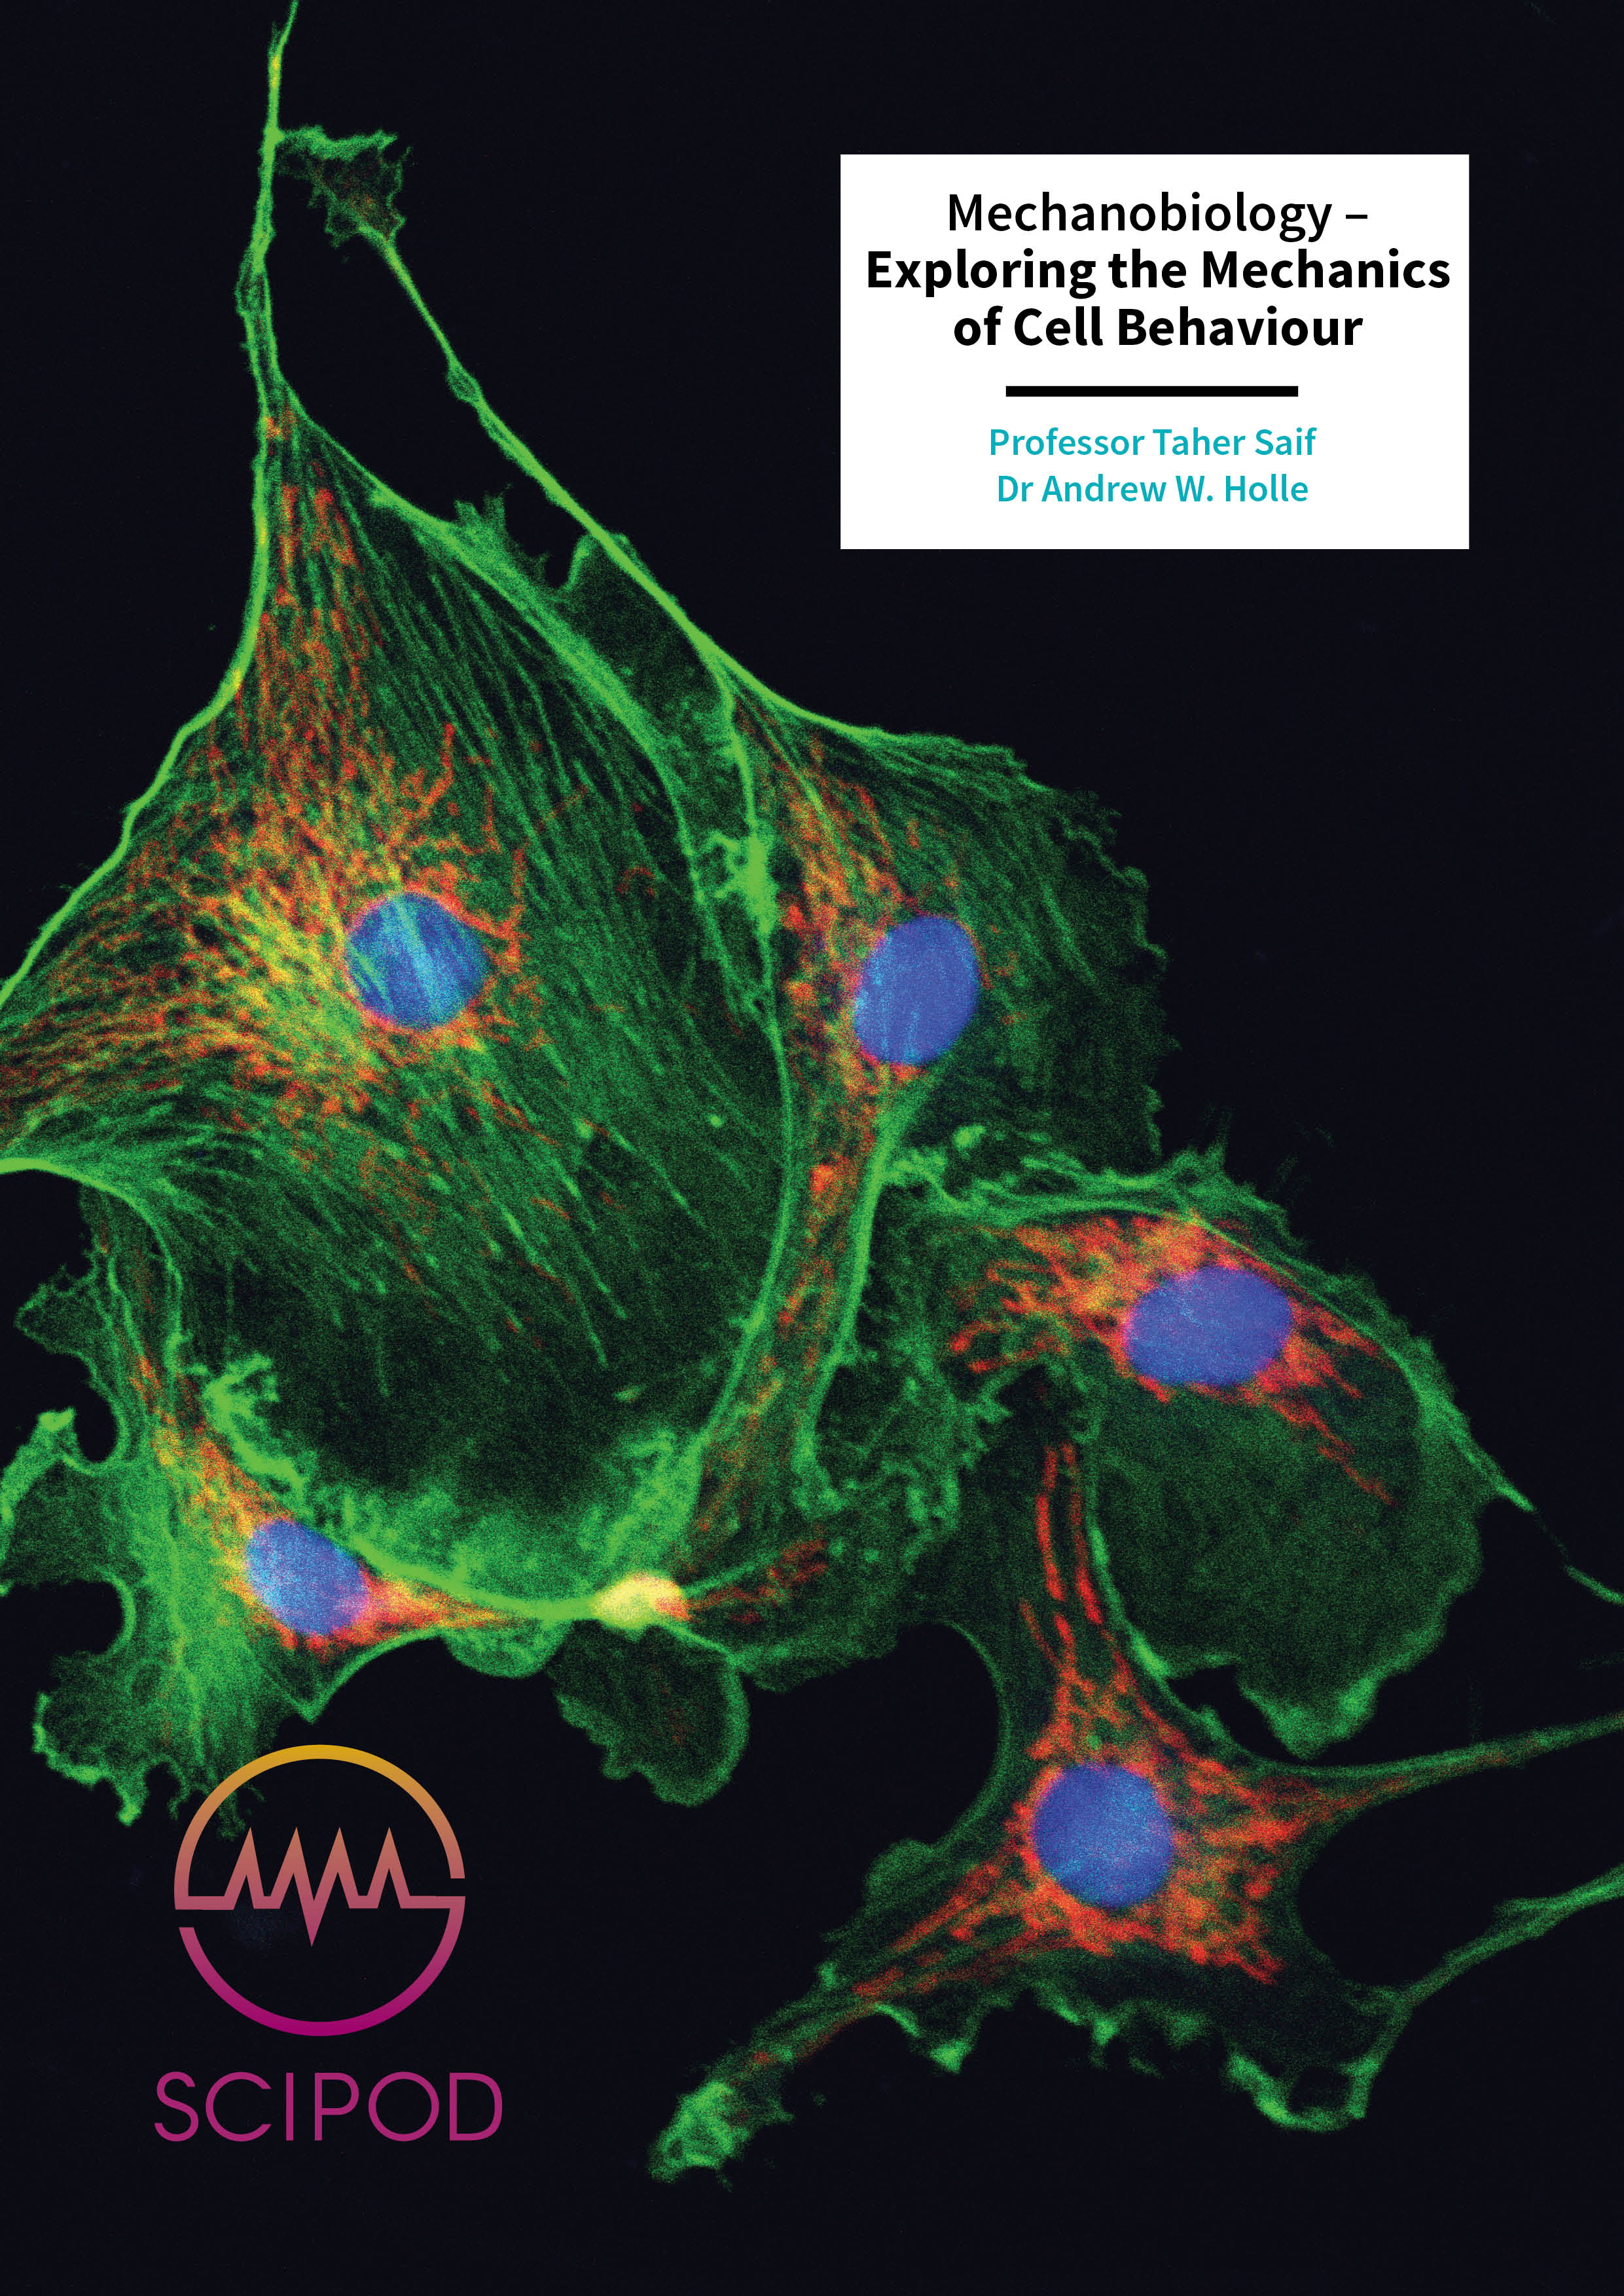 Mechanobiology – Exploring the Mechanics of Cell Behaviour – Professor Taher Saif and Dr Andrew W. Holle